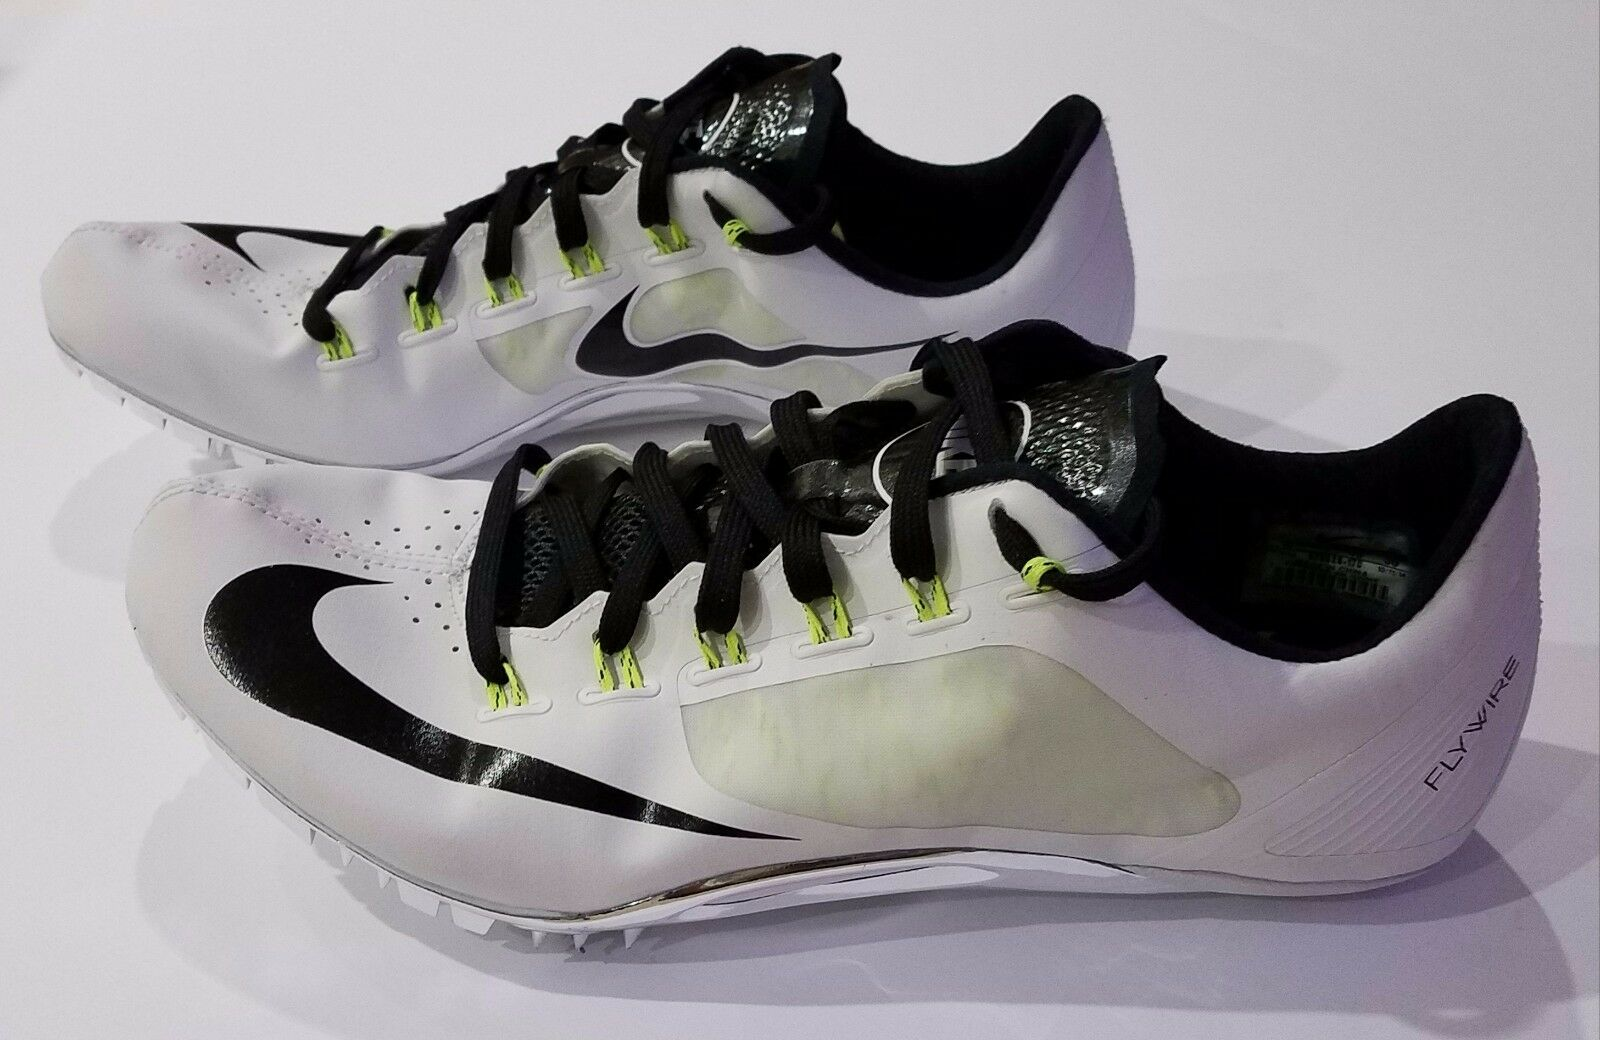 Nike Superfly R4 White Black Volt Track Spikes 526626-170 Mens Comfortable